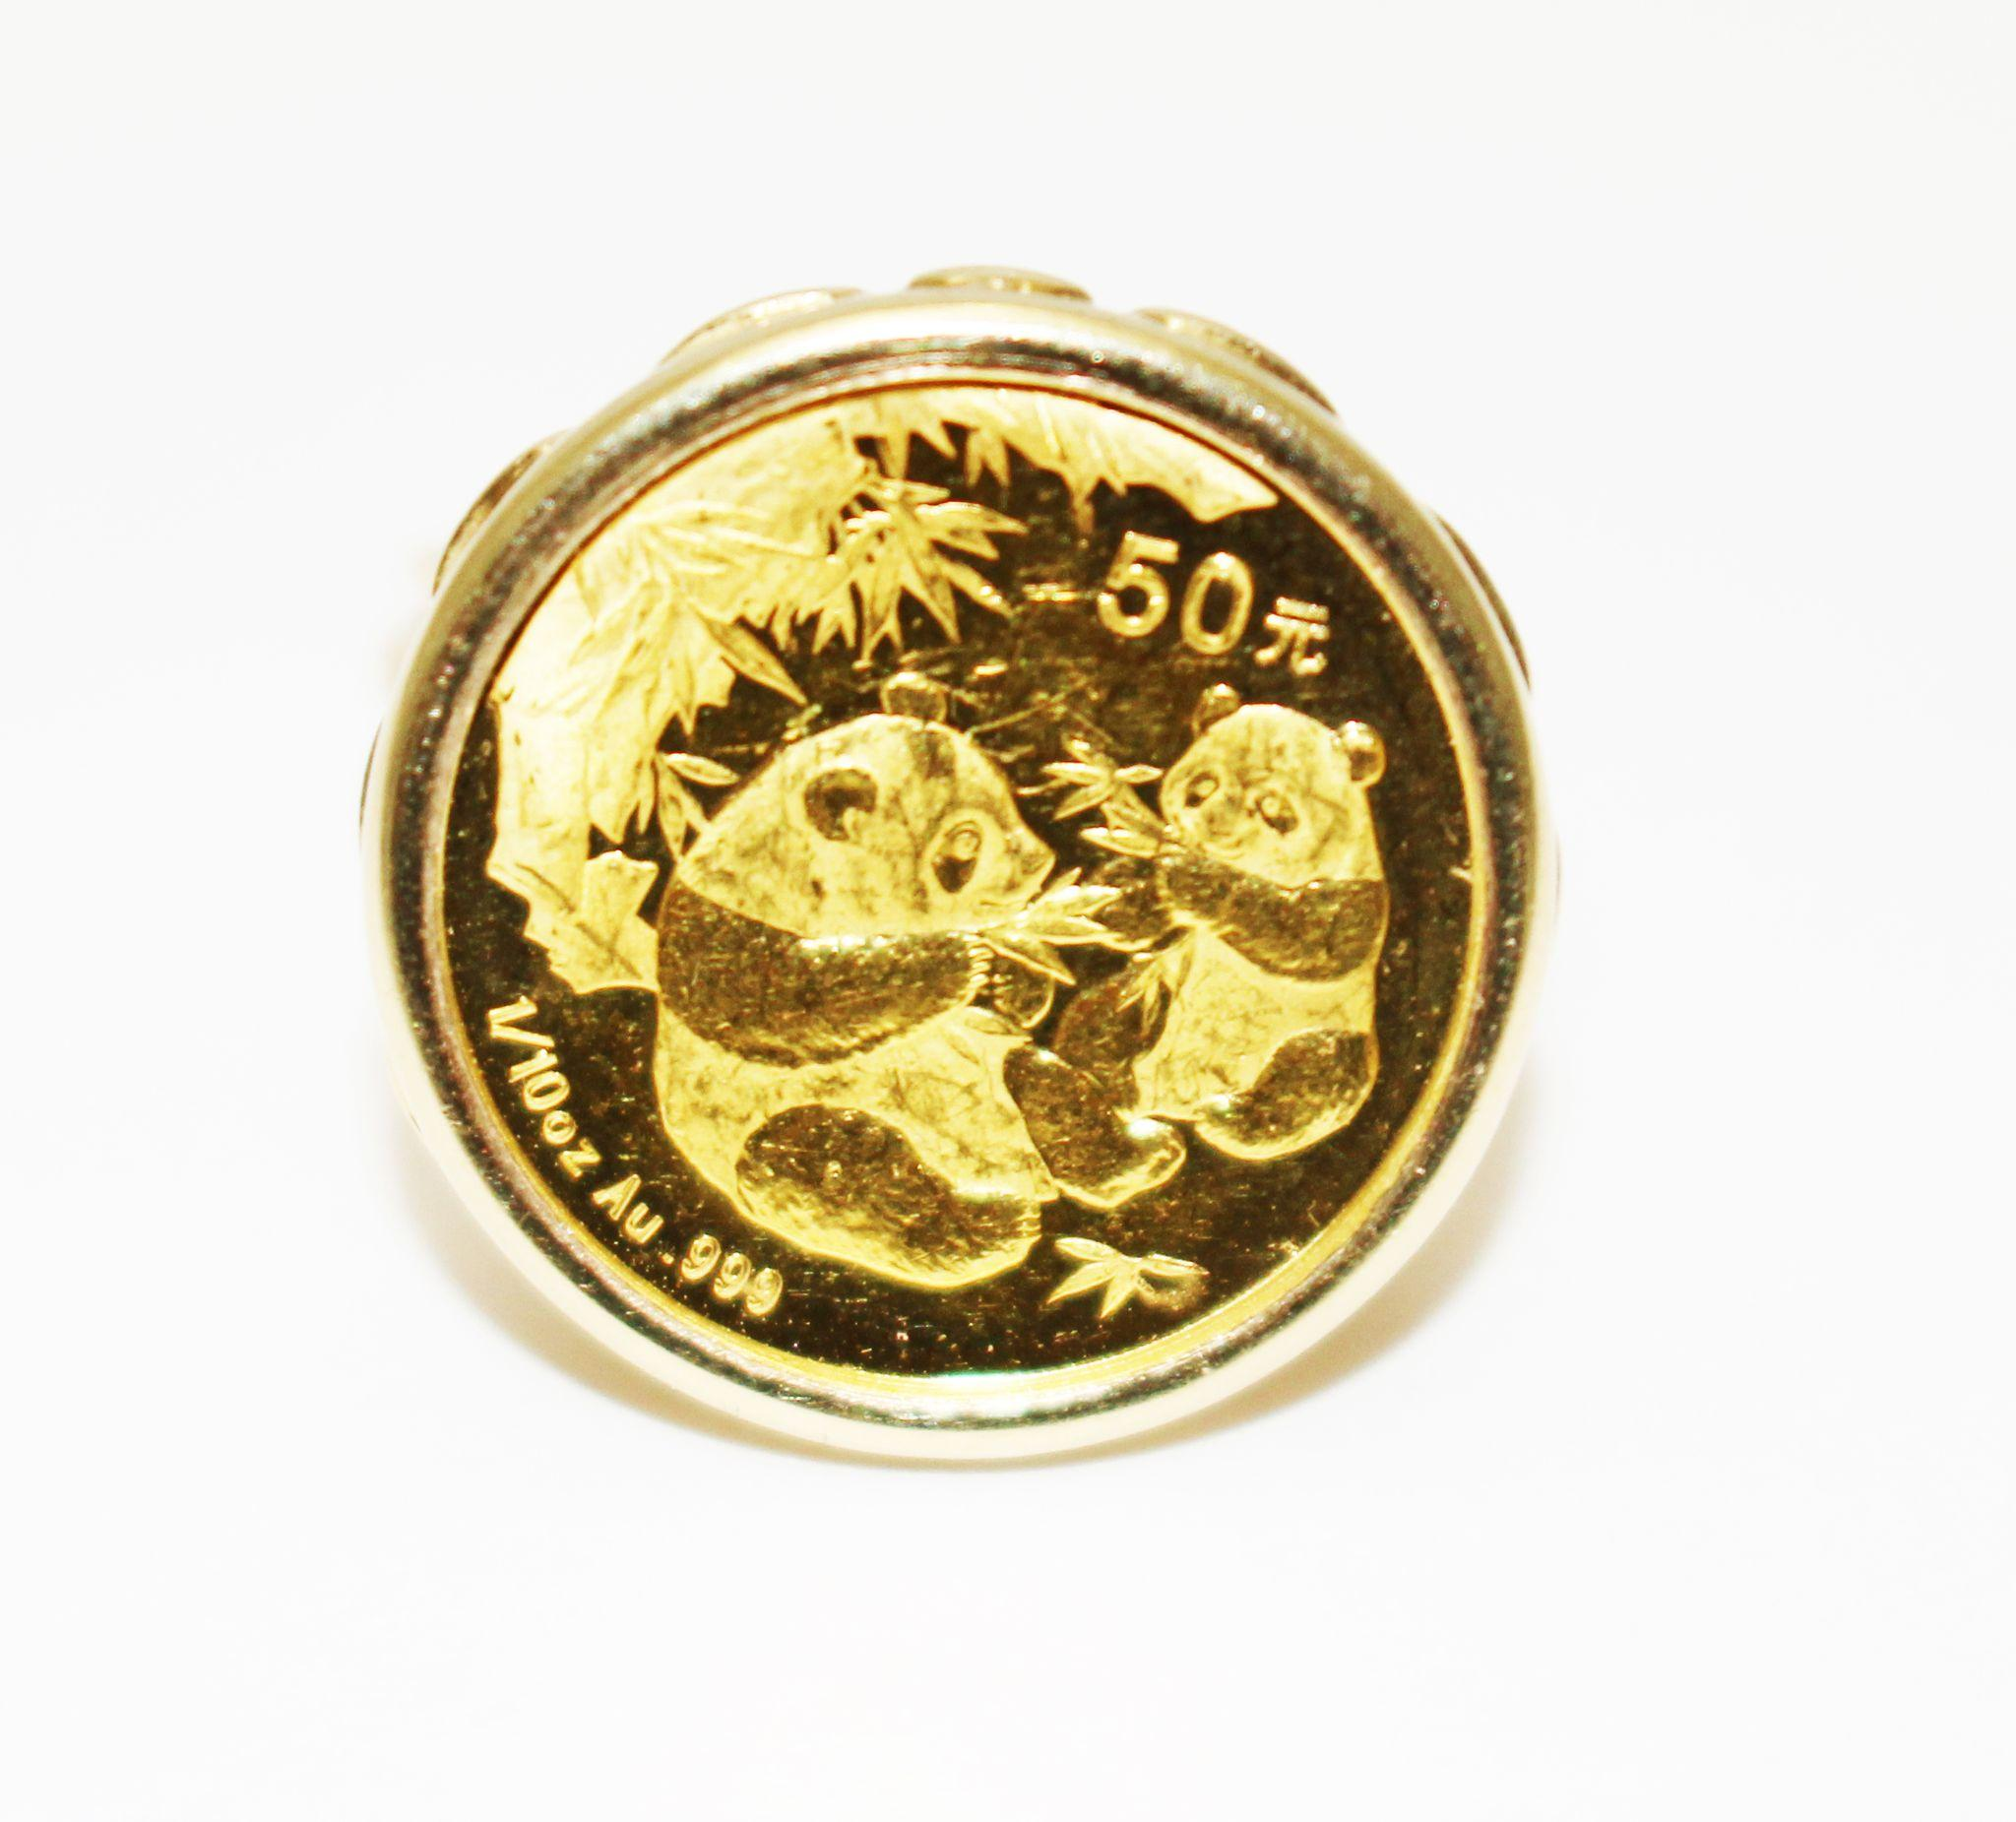 Gorgeous 24kt Gold 1 10 Oz Panda Coin Ring Set In 14kt Yellow Gold From Samantha Cham Nyc On